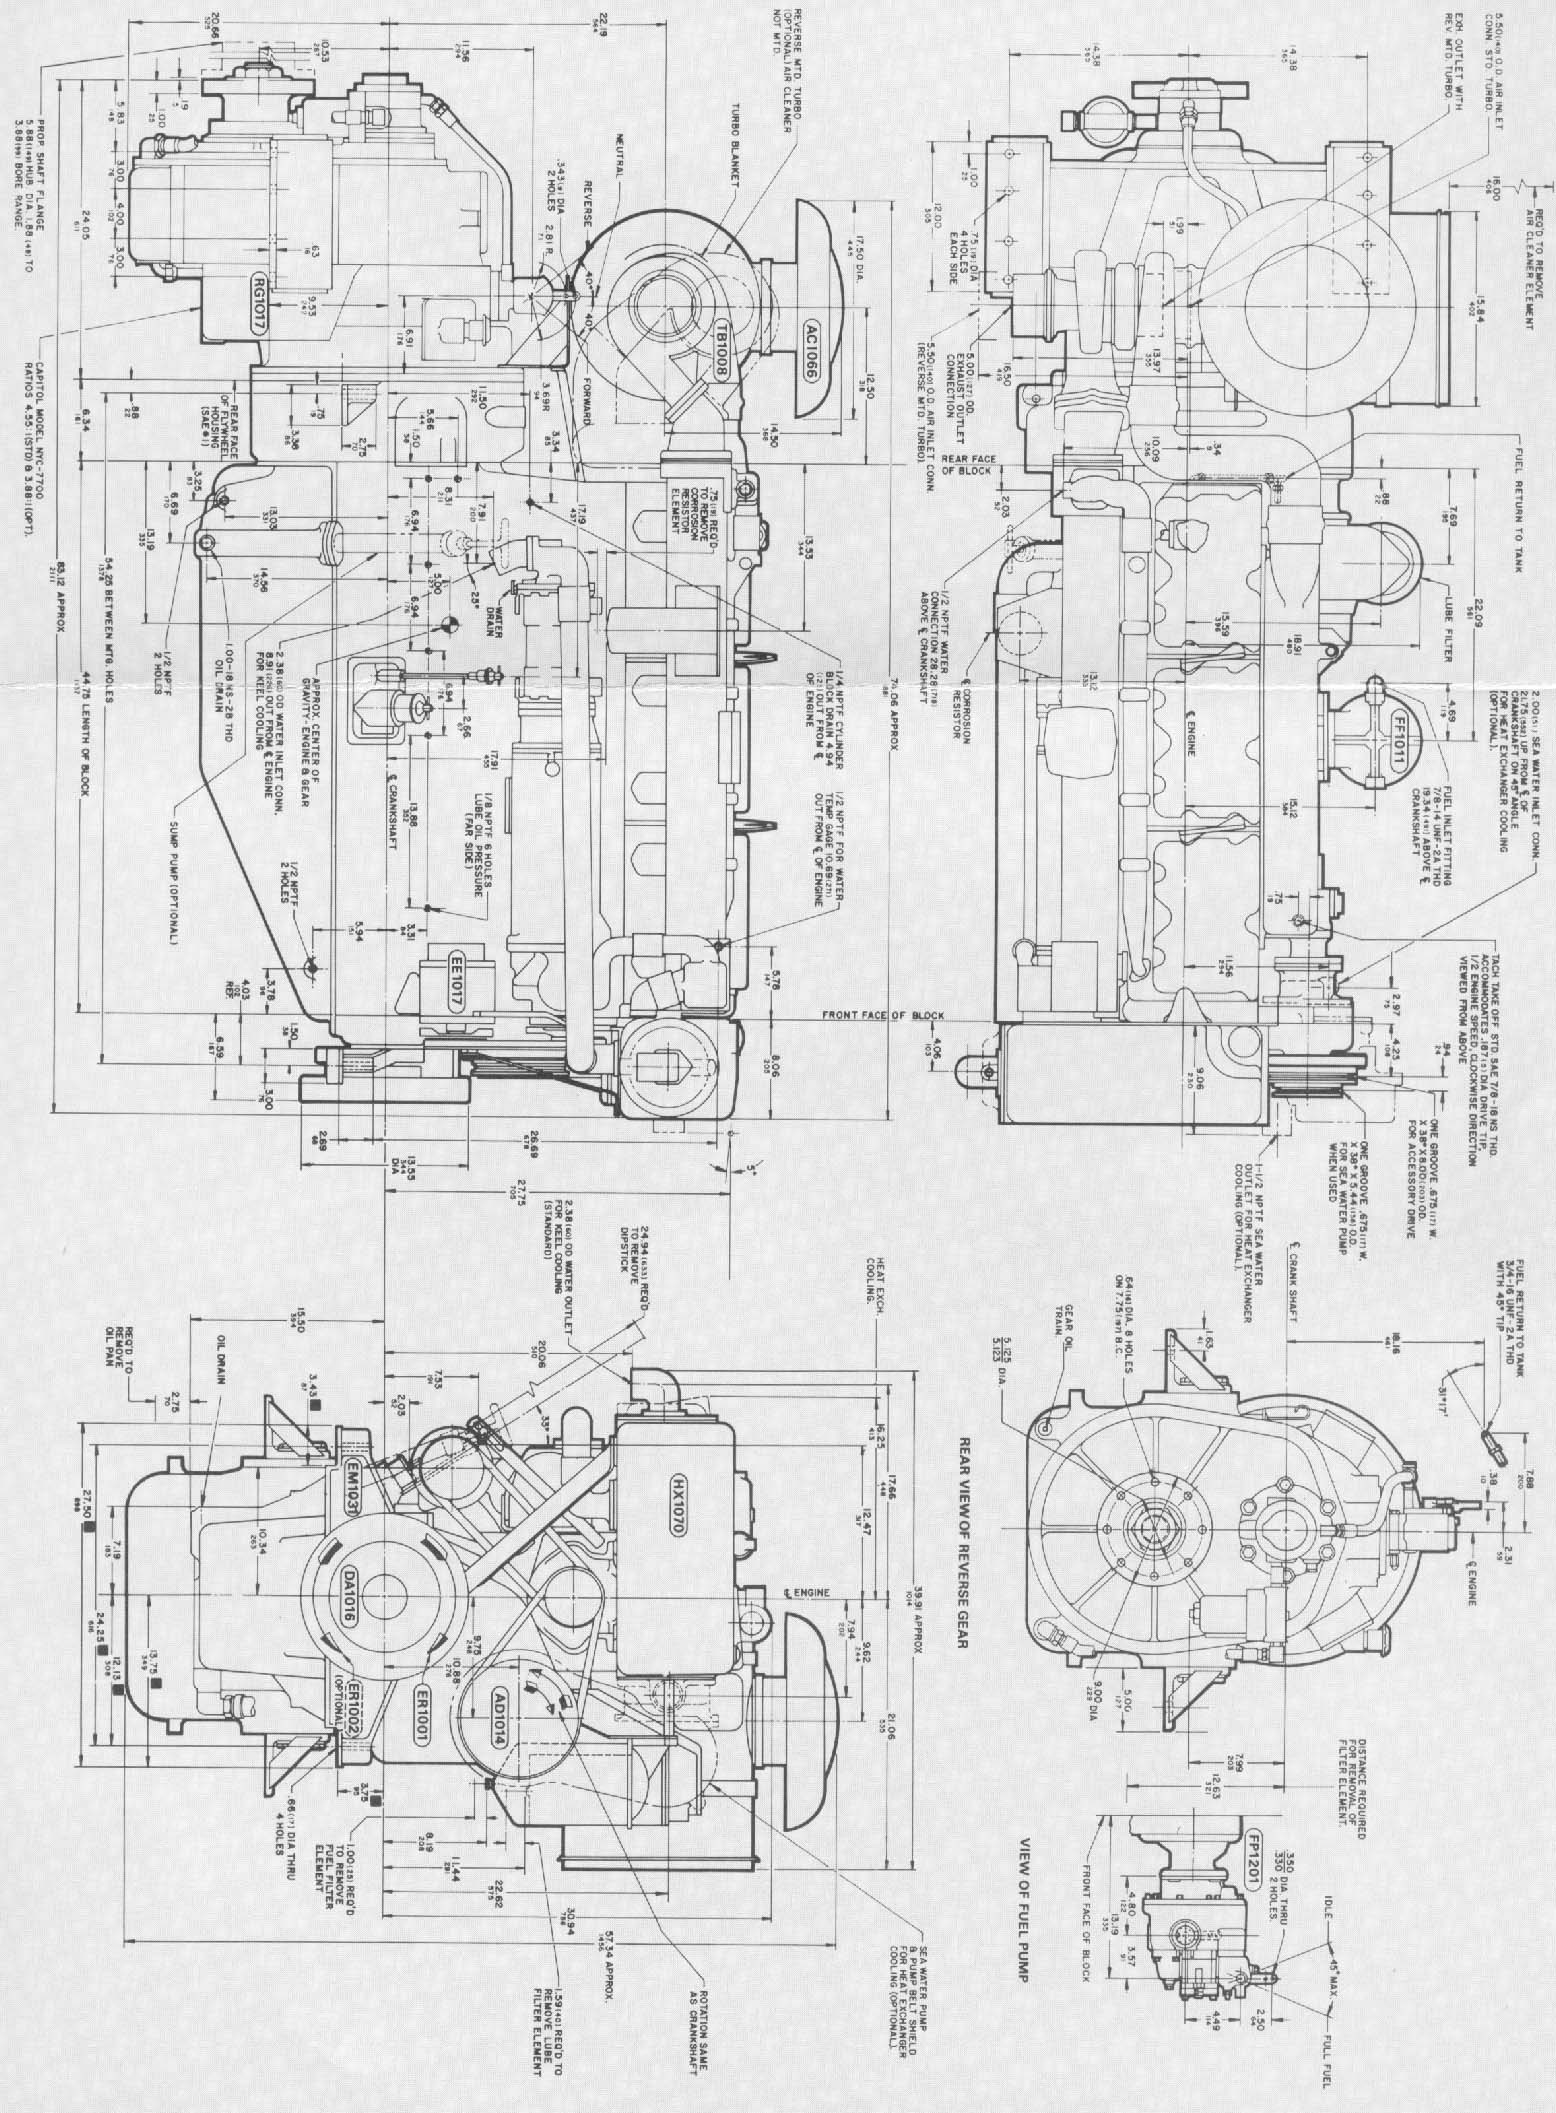 Caterpillar 3116 Engine Diagram Find the Best Sel Engine Transmission and Generator Brochures now Of Caterpillar 3116 Engine Diagram